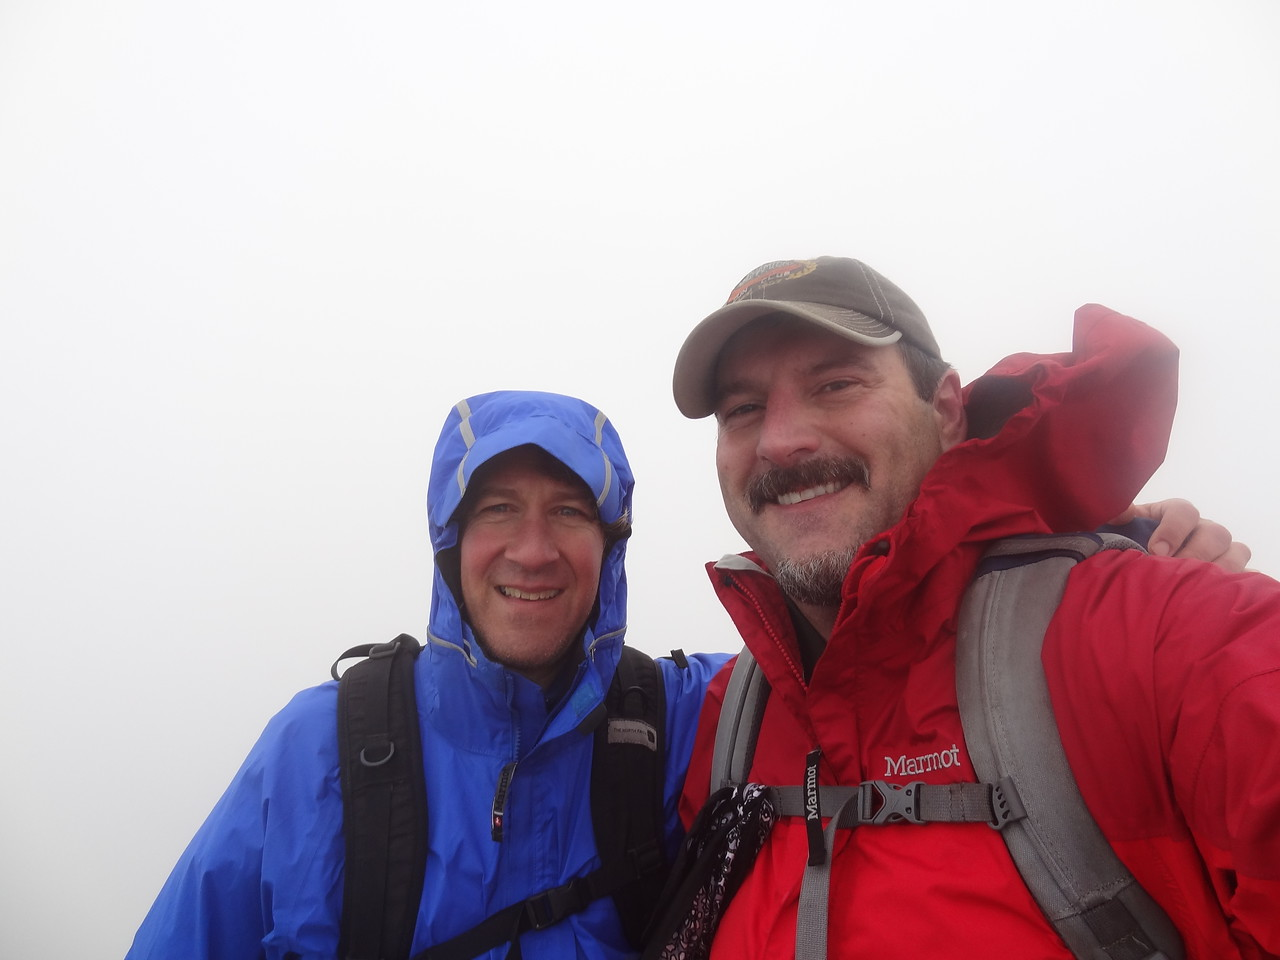 The summit of Haystack. We got a few very brief views but mostly a white Christmas. I may photoshop some views behind us. Maybe surfing in Hawaii. Aloha.